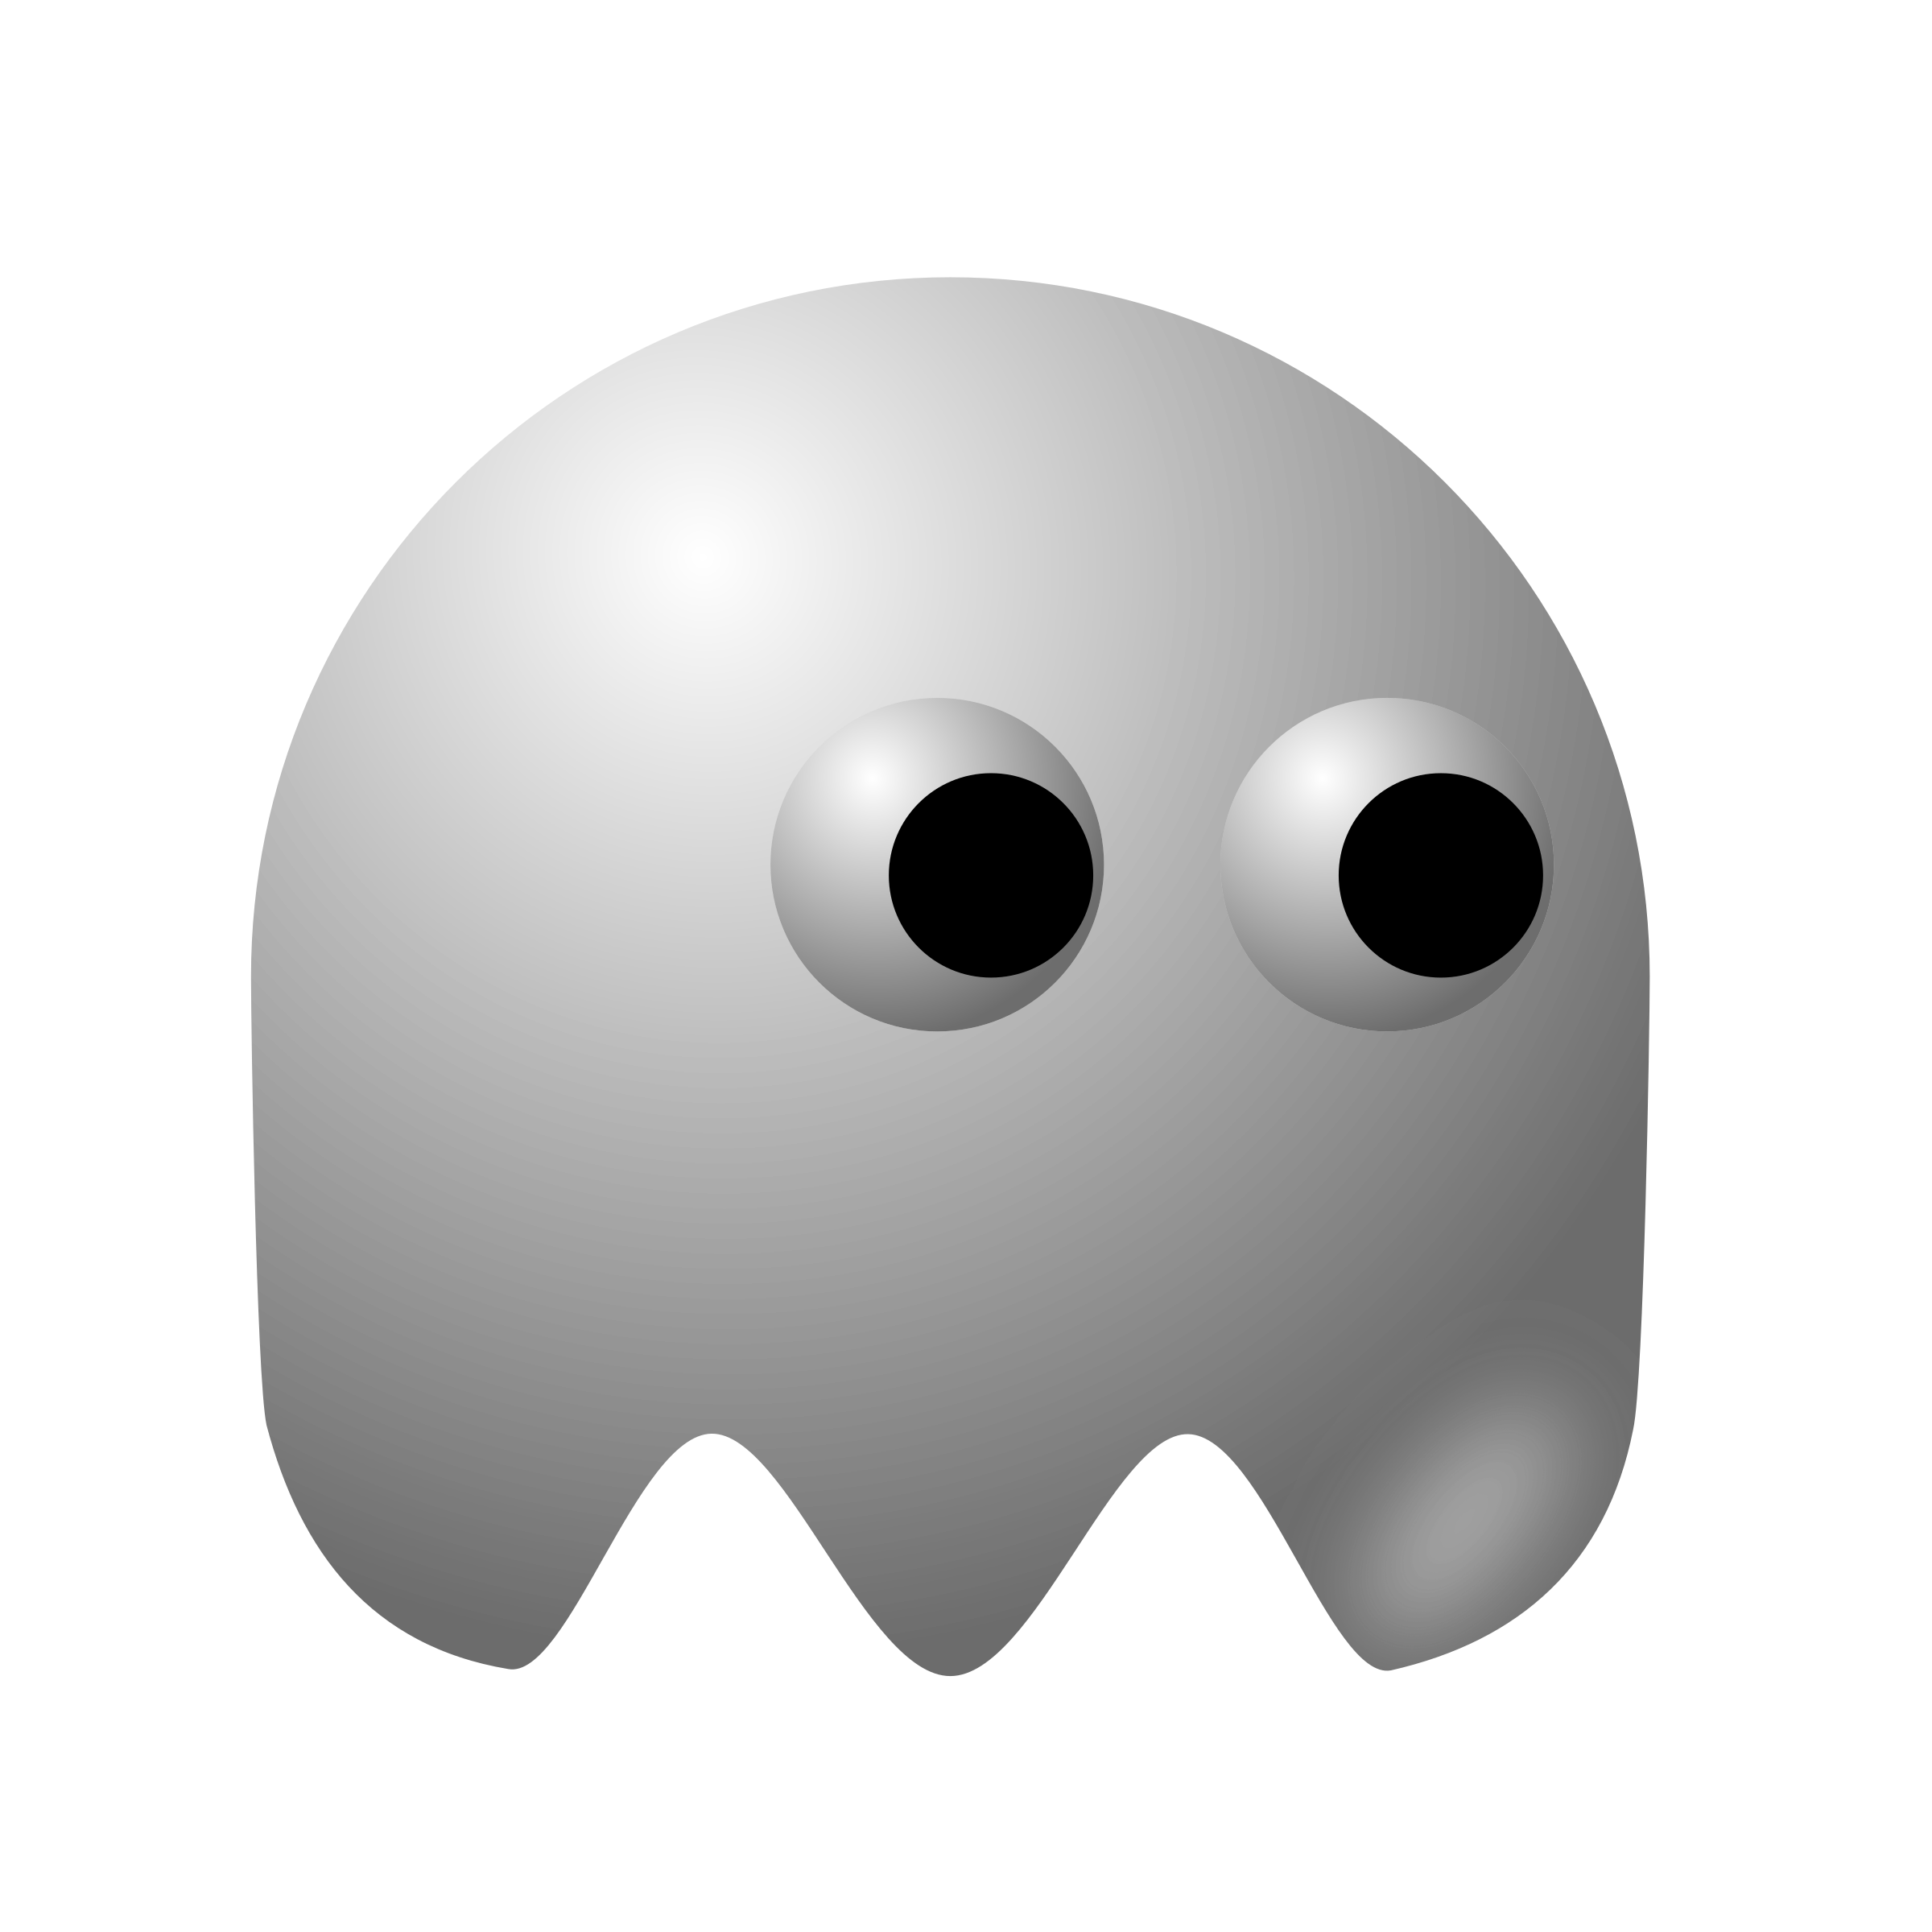 Pacman clipart black and white. Padepokan ghost icons png